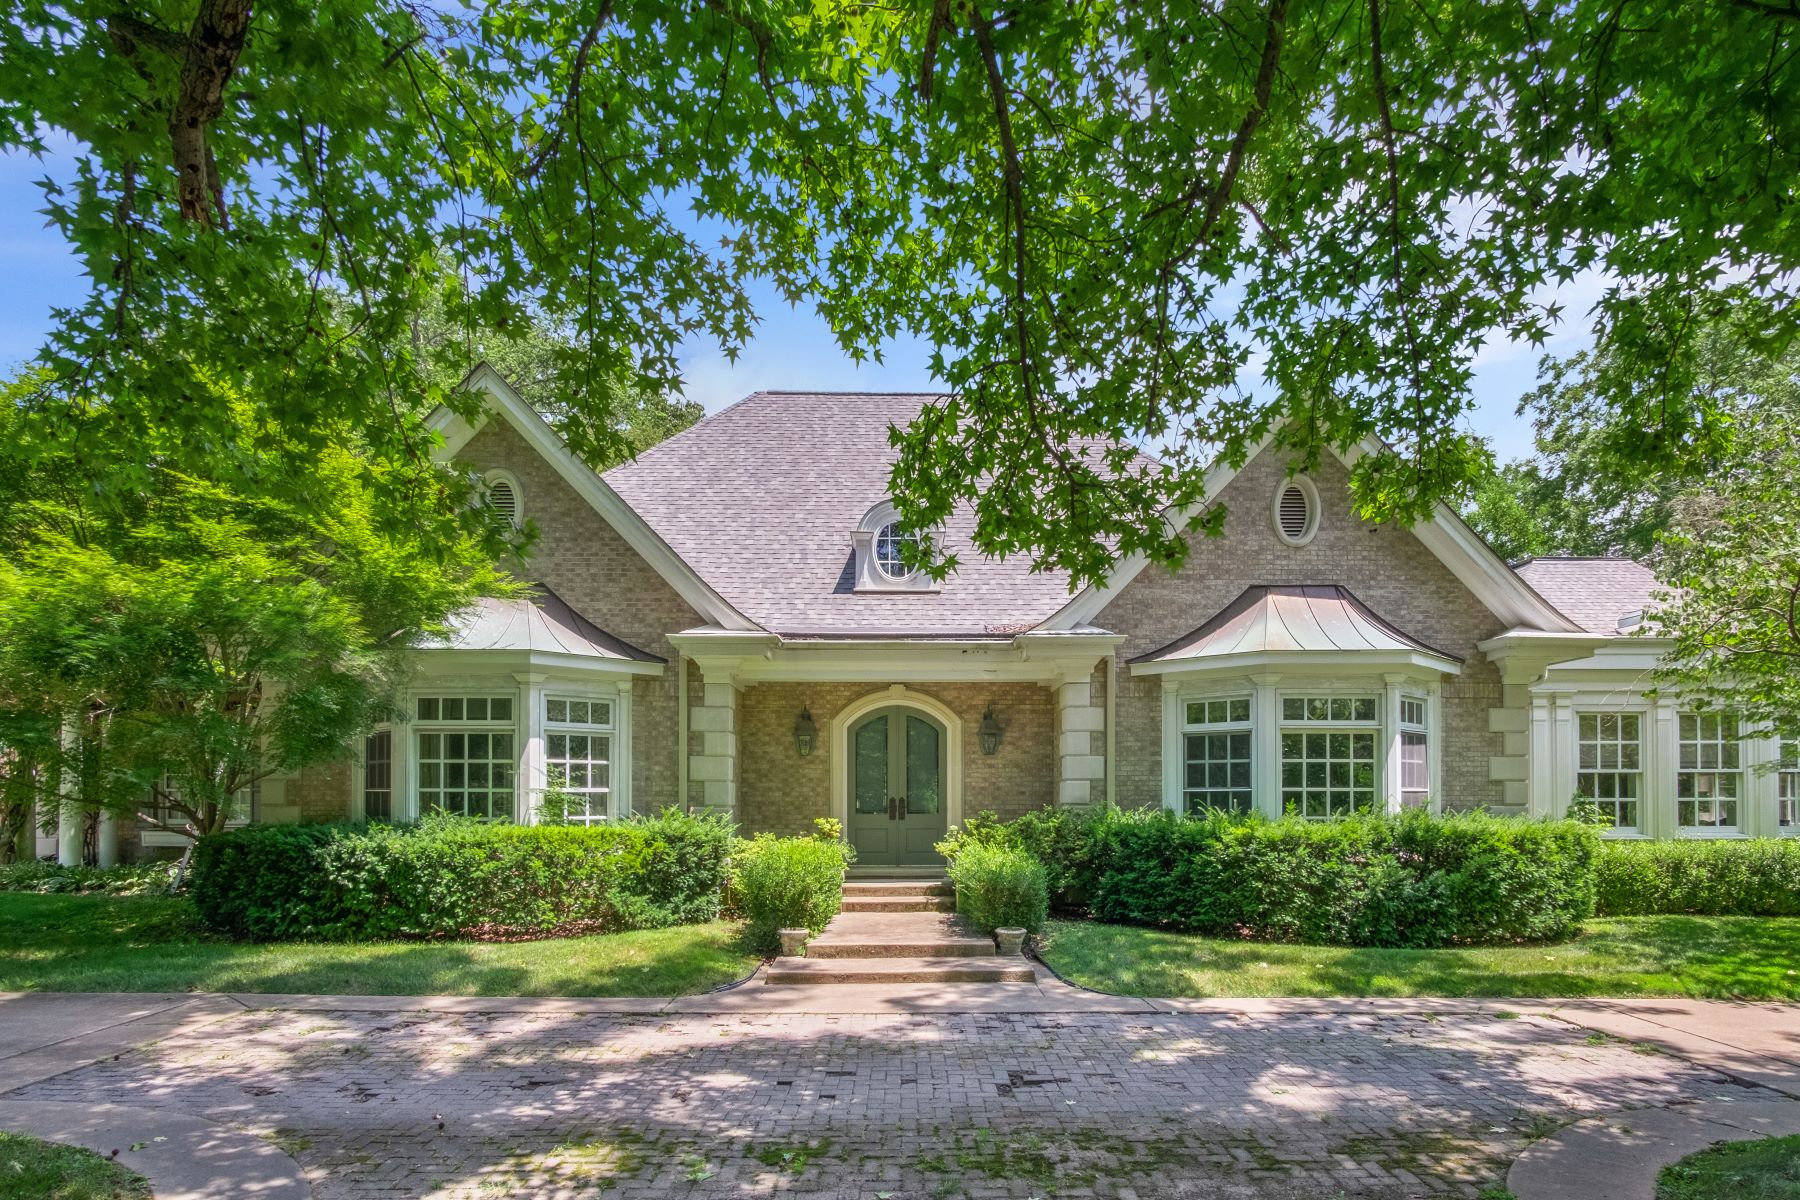 Single Family Homes for Sale at Exceptional Opportunity to Create Your Dream Home 2038 North Geyer Road Frontenac, Missouri 63131 United States